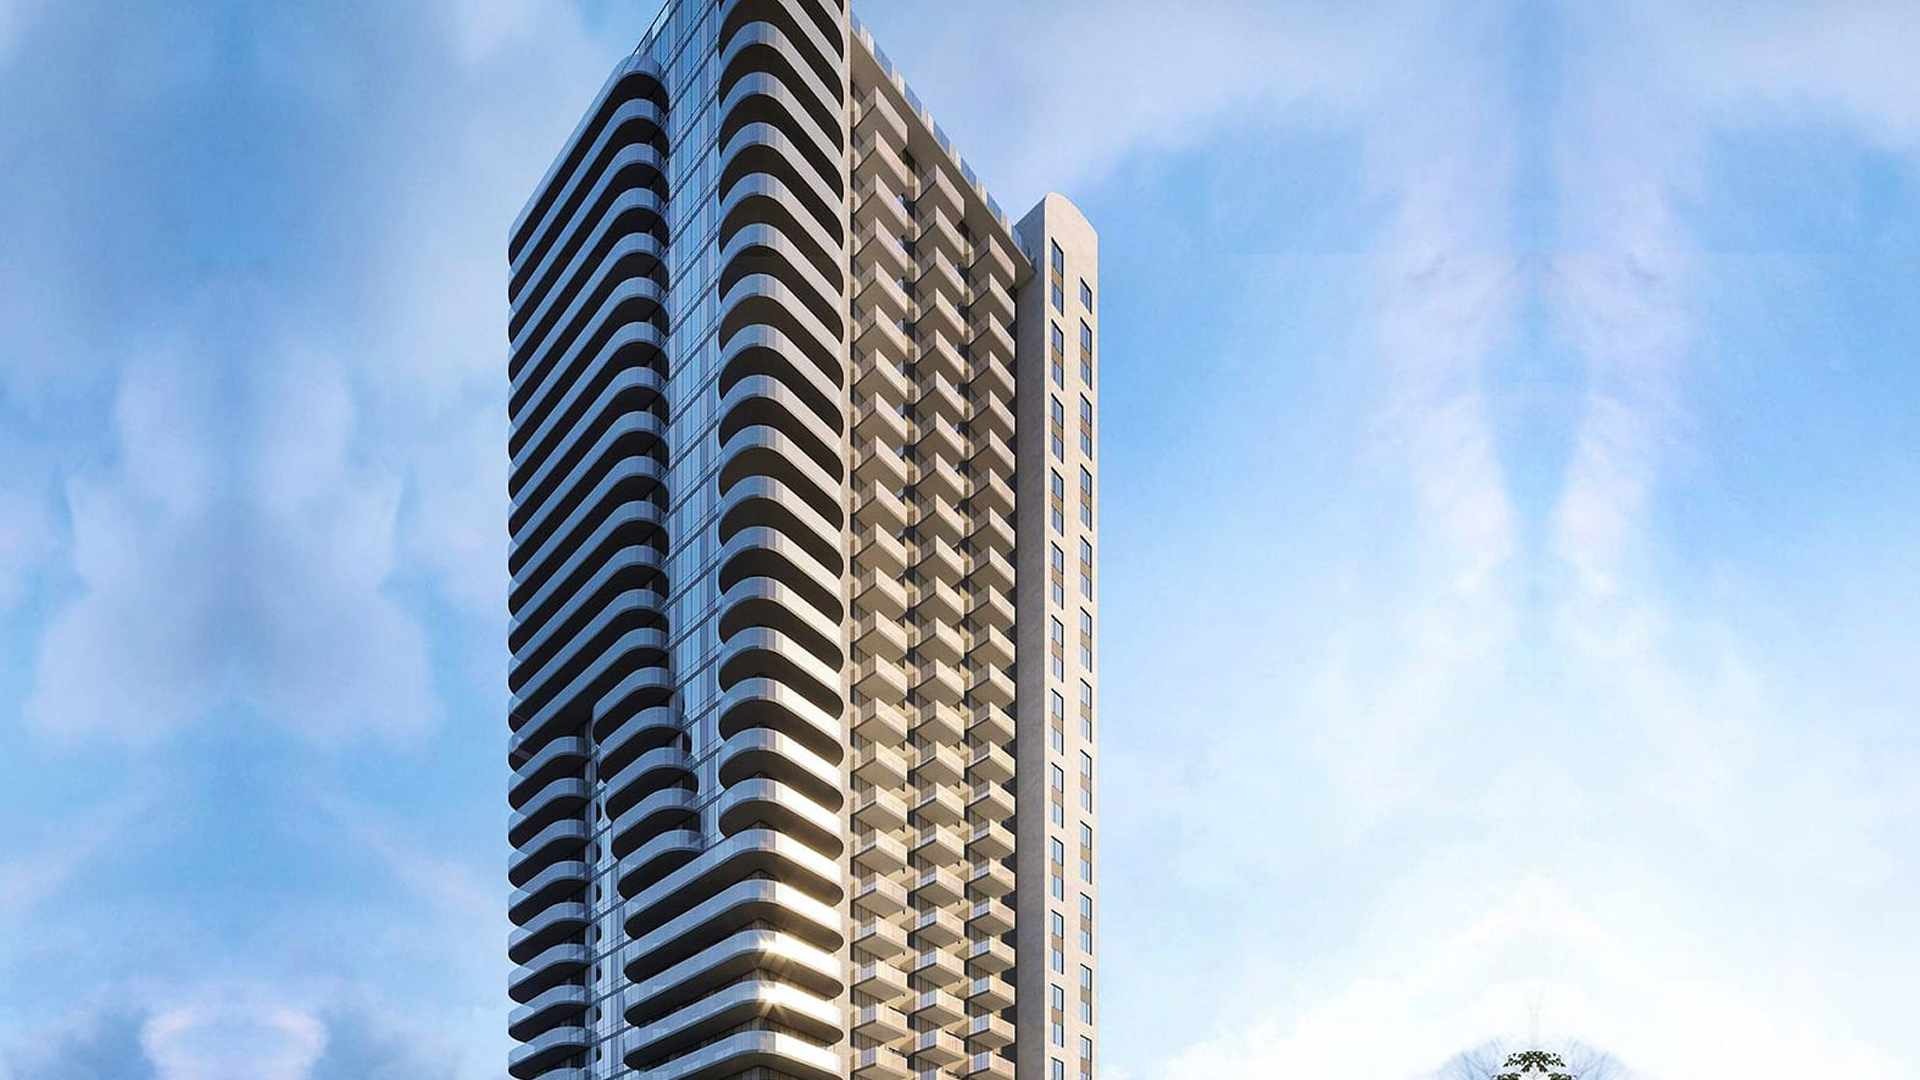 avia-condos-mississauga-square-one-condos-investment-pre-construction2-main1565030136.jpg